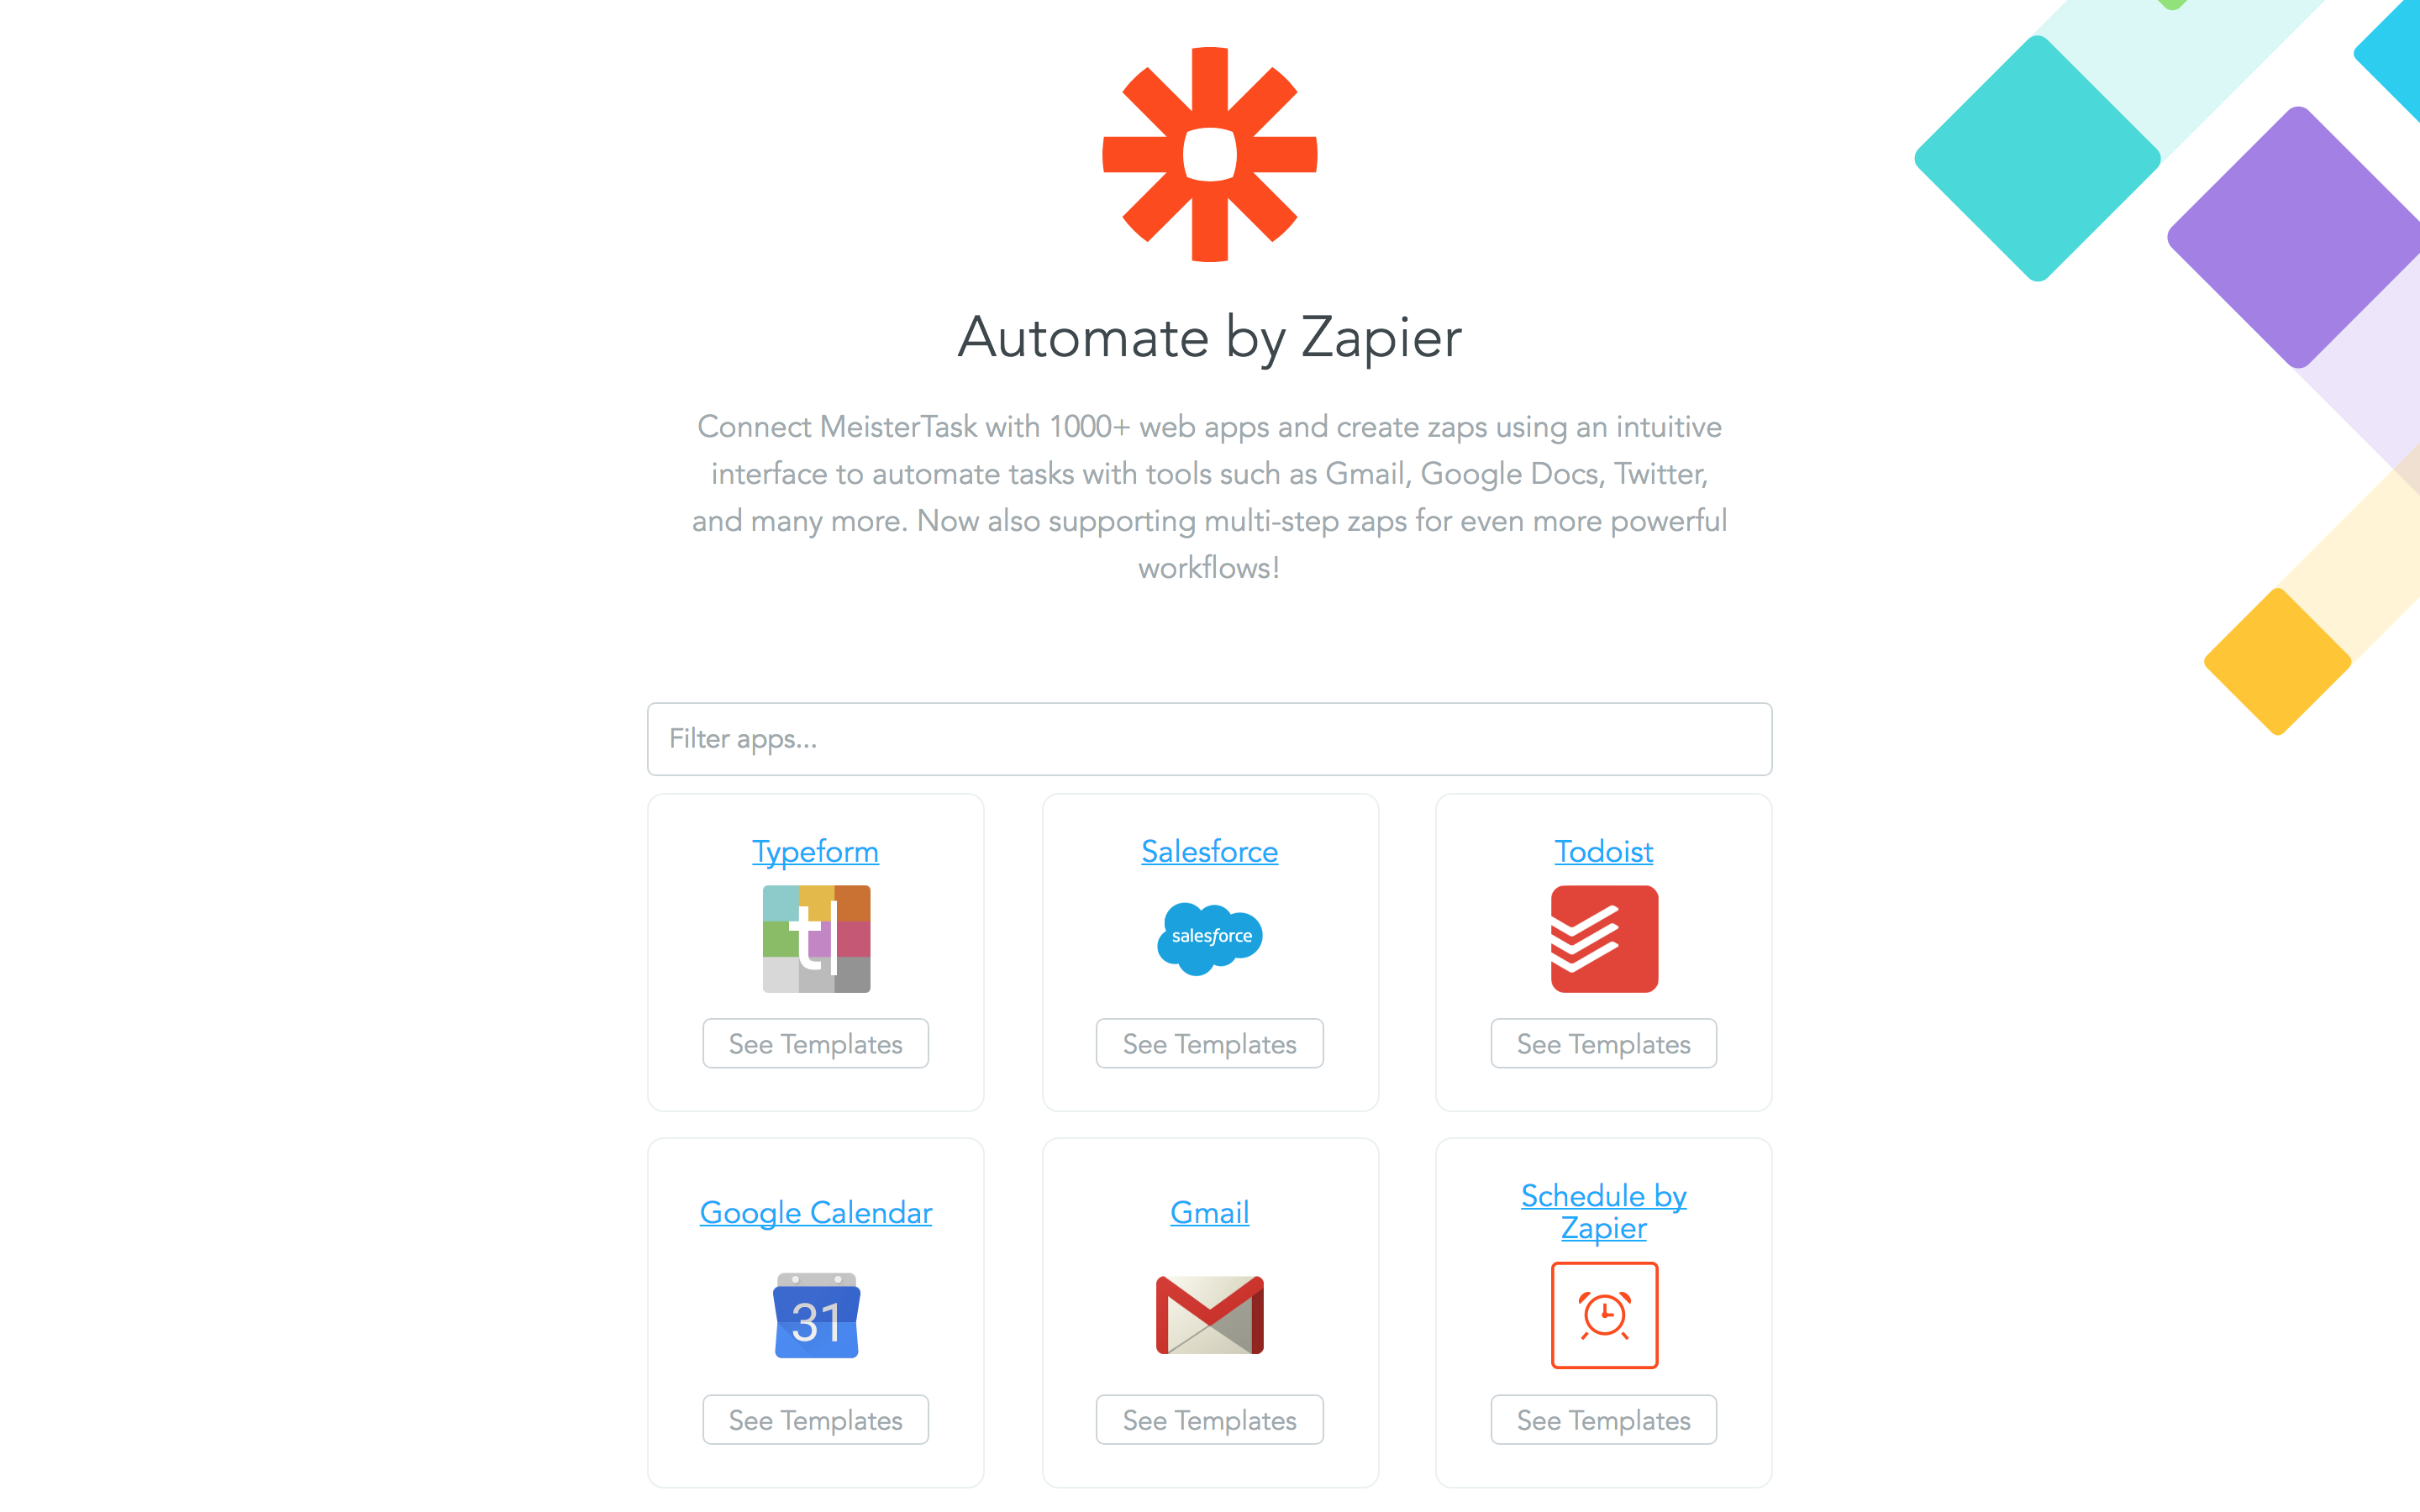 Automate by Zapier Integrate with MeisterTask Zapier choose app